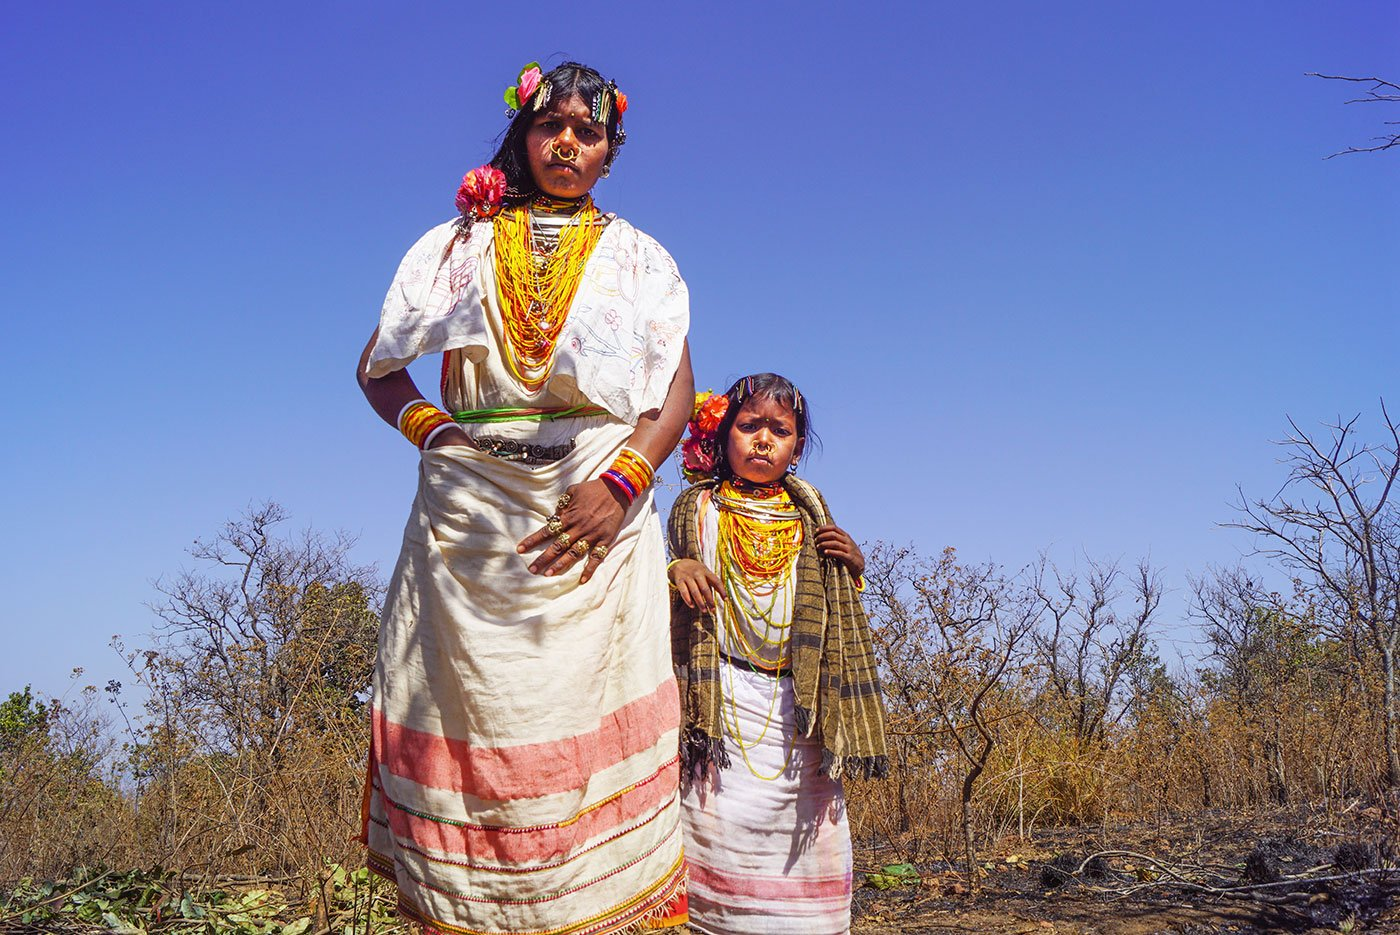 A tribal woman and a young tribal girl in their traditional attire